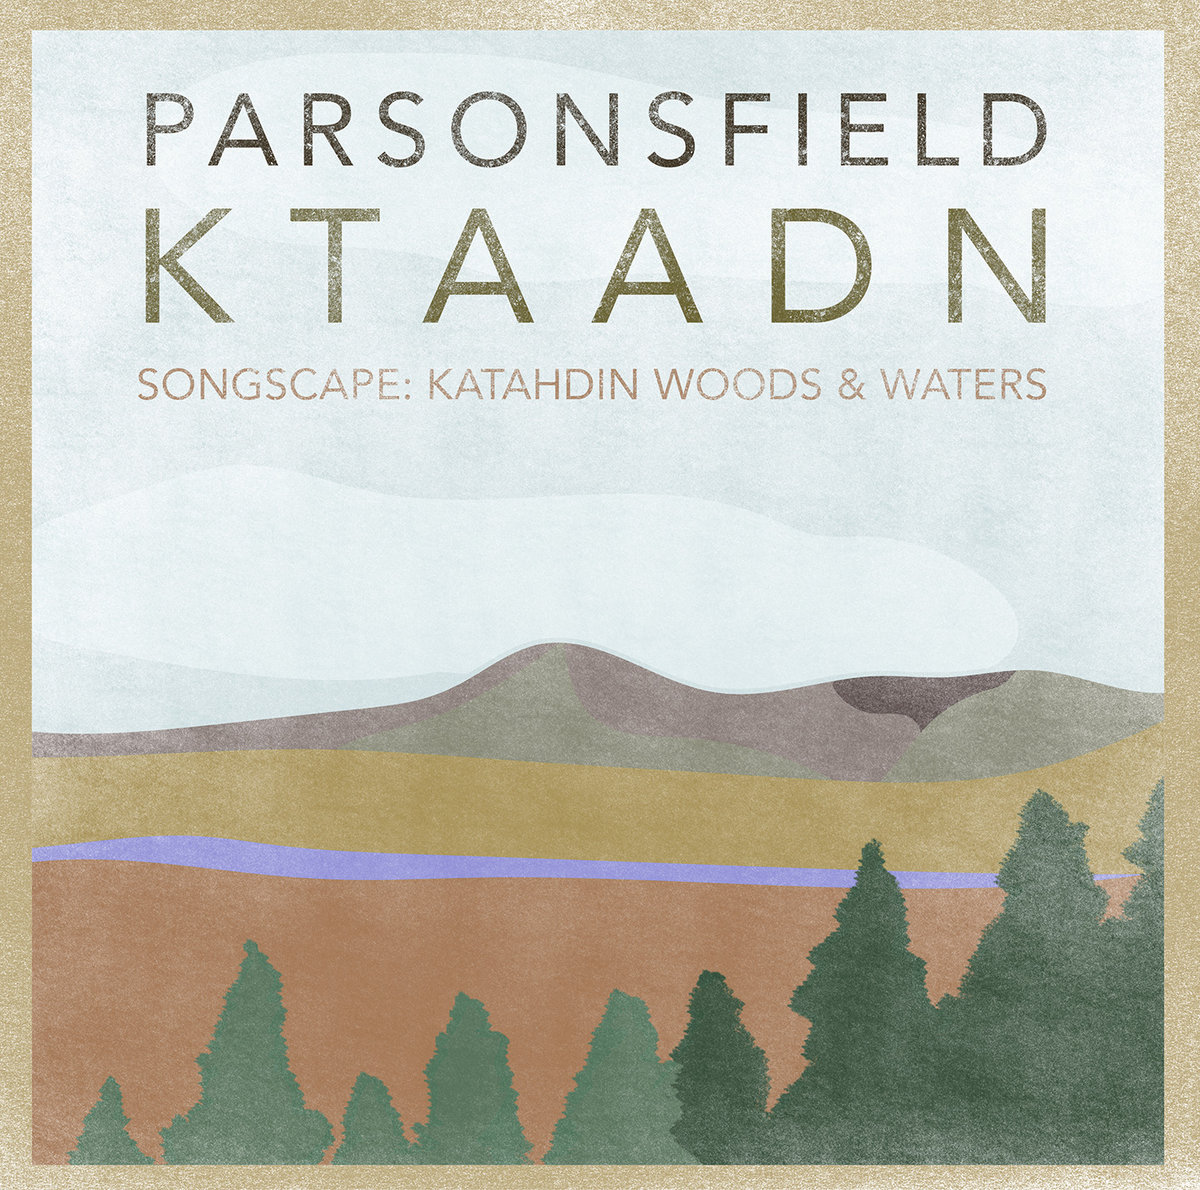 Parsonsfield and Sustain Music & Nature Join Forces to Support Public Lands